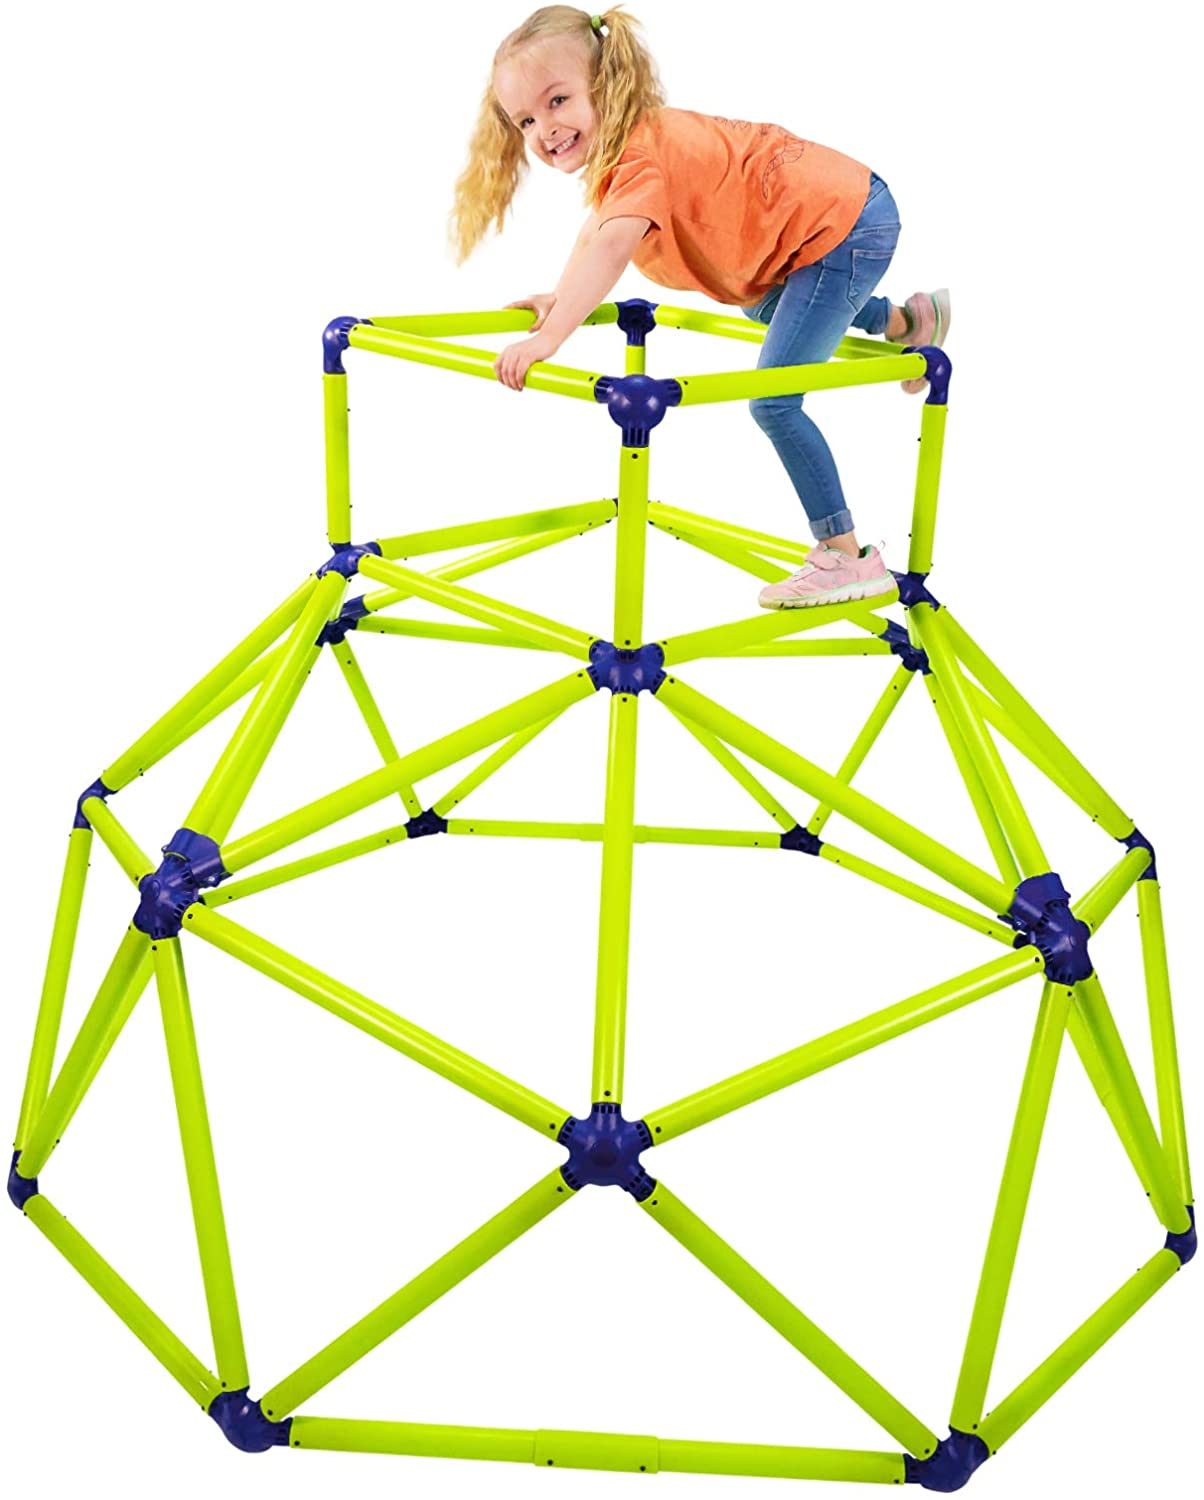 Kid playing on a jungle gym